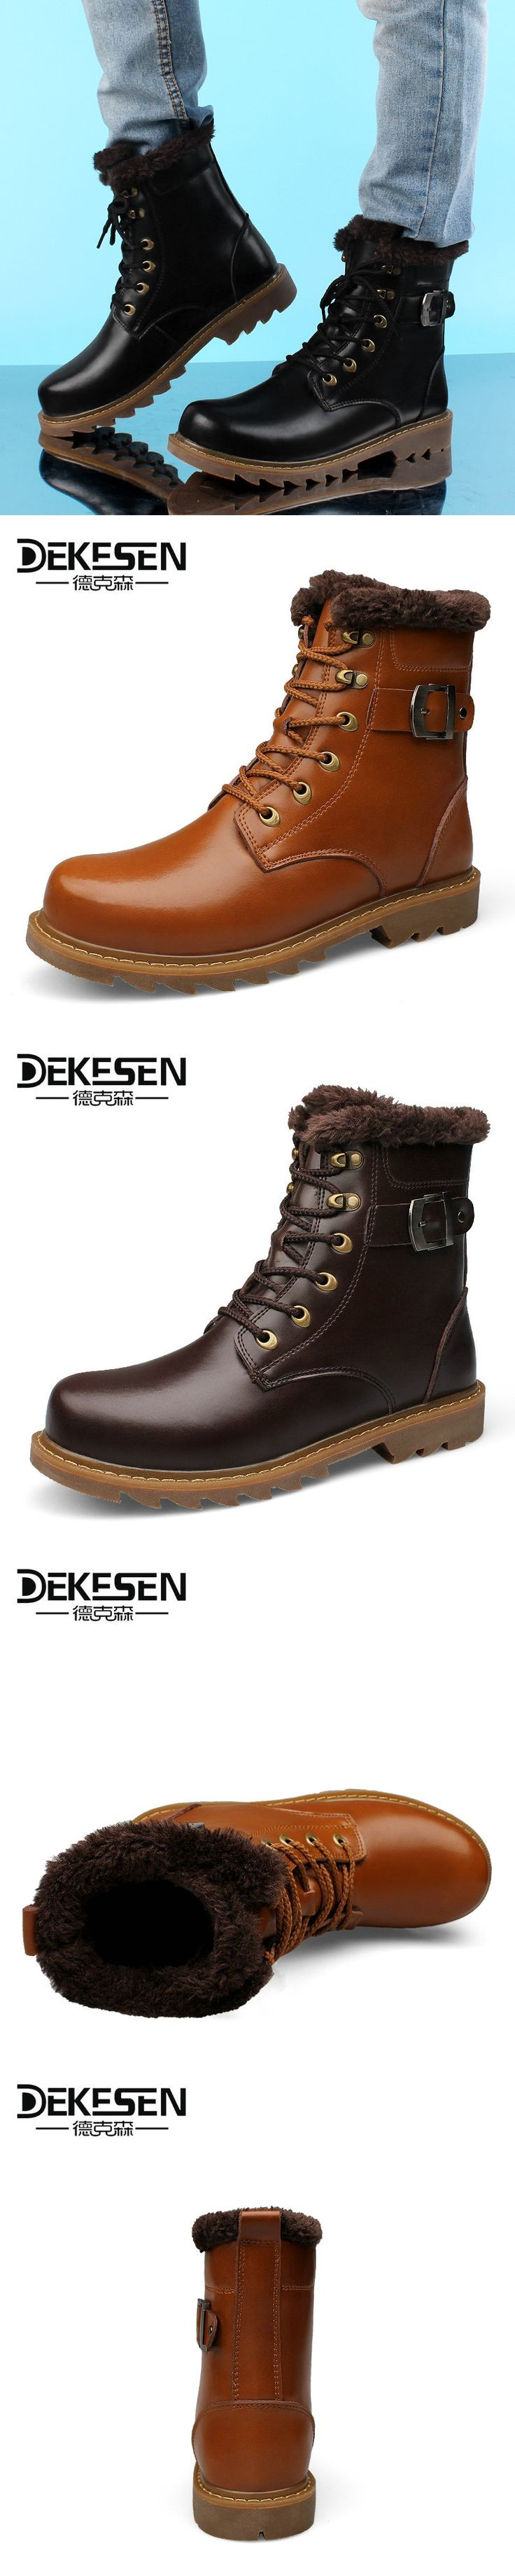 DEKESEN 2017 Men Boots for Russian, First Layer Cow Leather Shoes Man, winter Snow Ankle boots, Safety boots Men Plus size 6-12